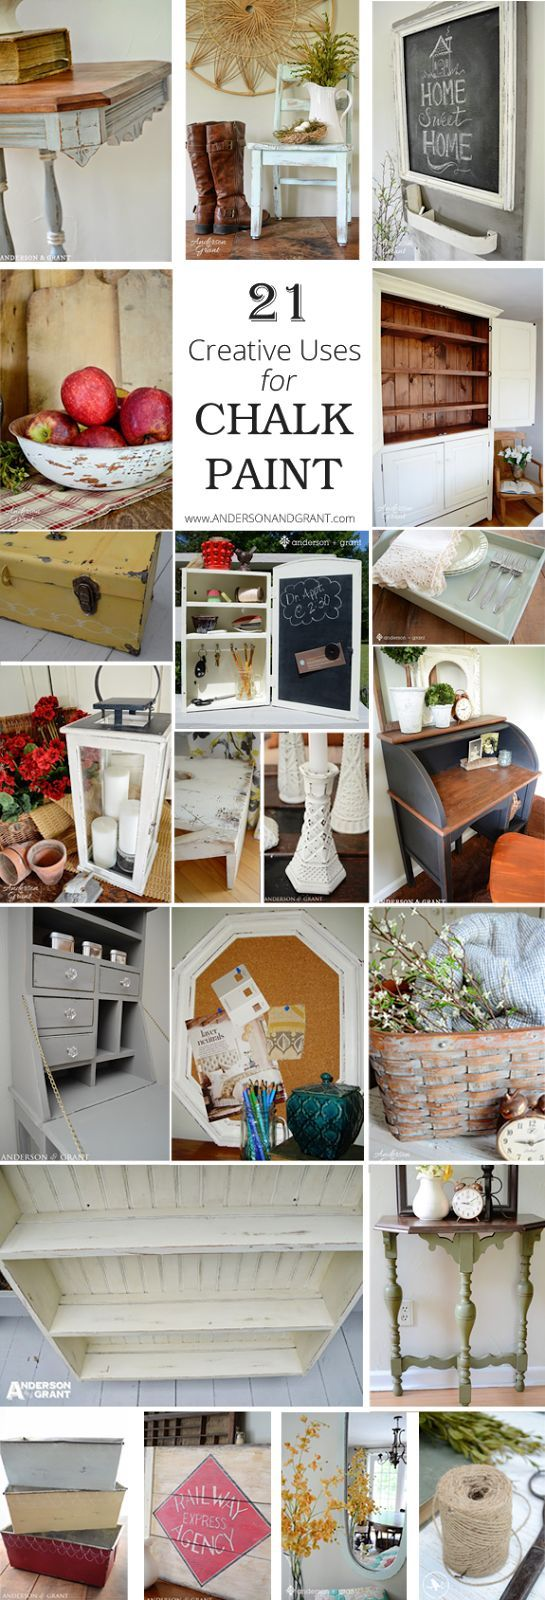 DIY #21 Creative Uses for Chalk Paint ! (with tutorials) andersonandgrant